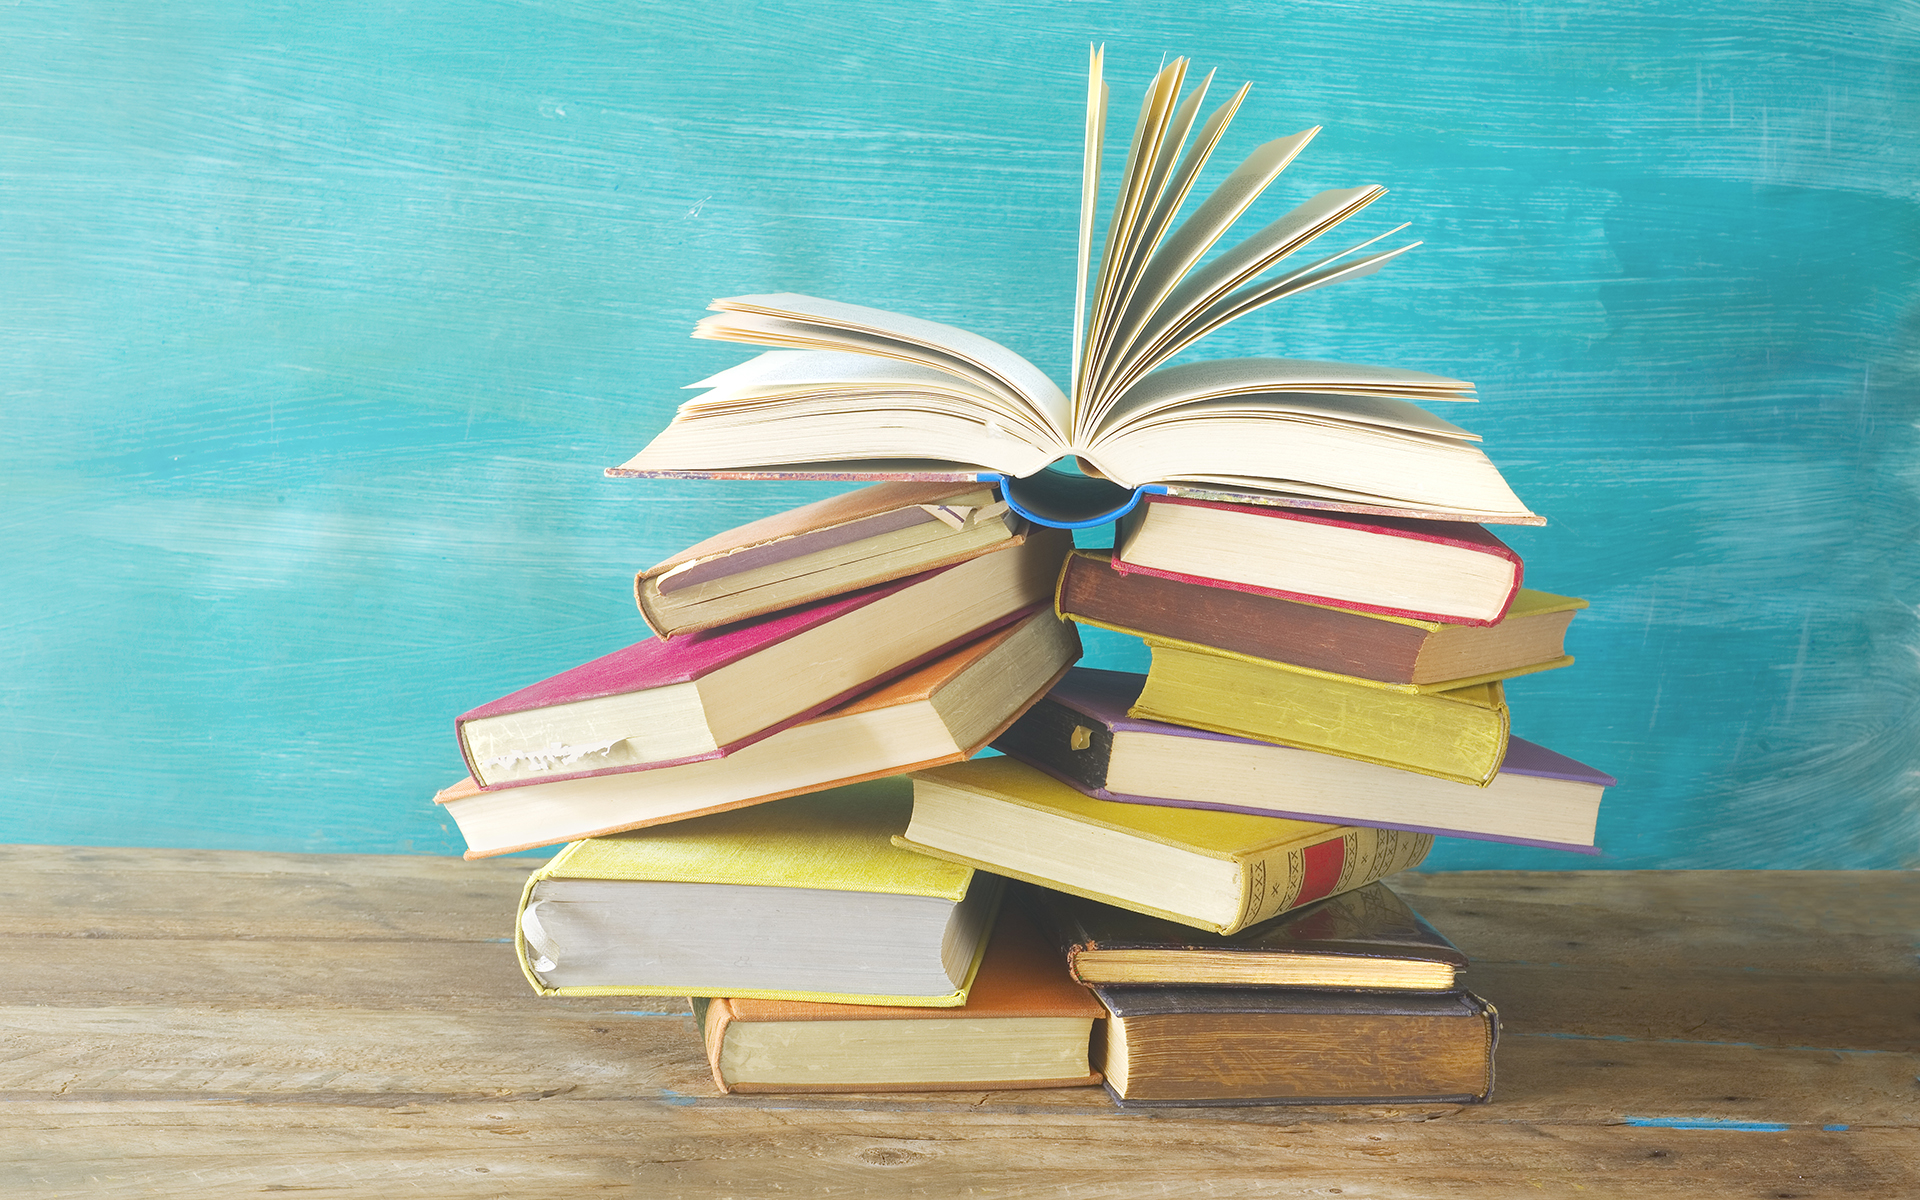 10 mindful books to read this year - Opened Book on a pile of old books, panorma, good copy space